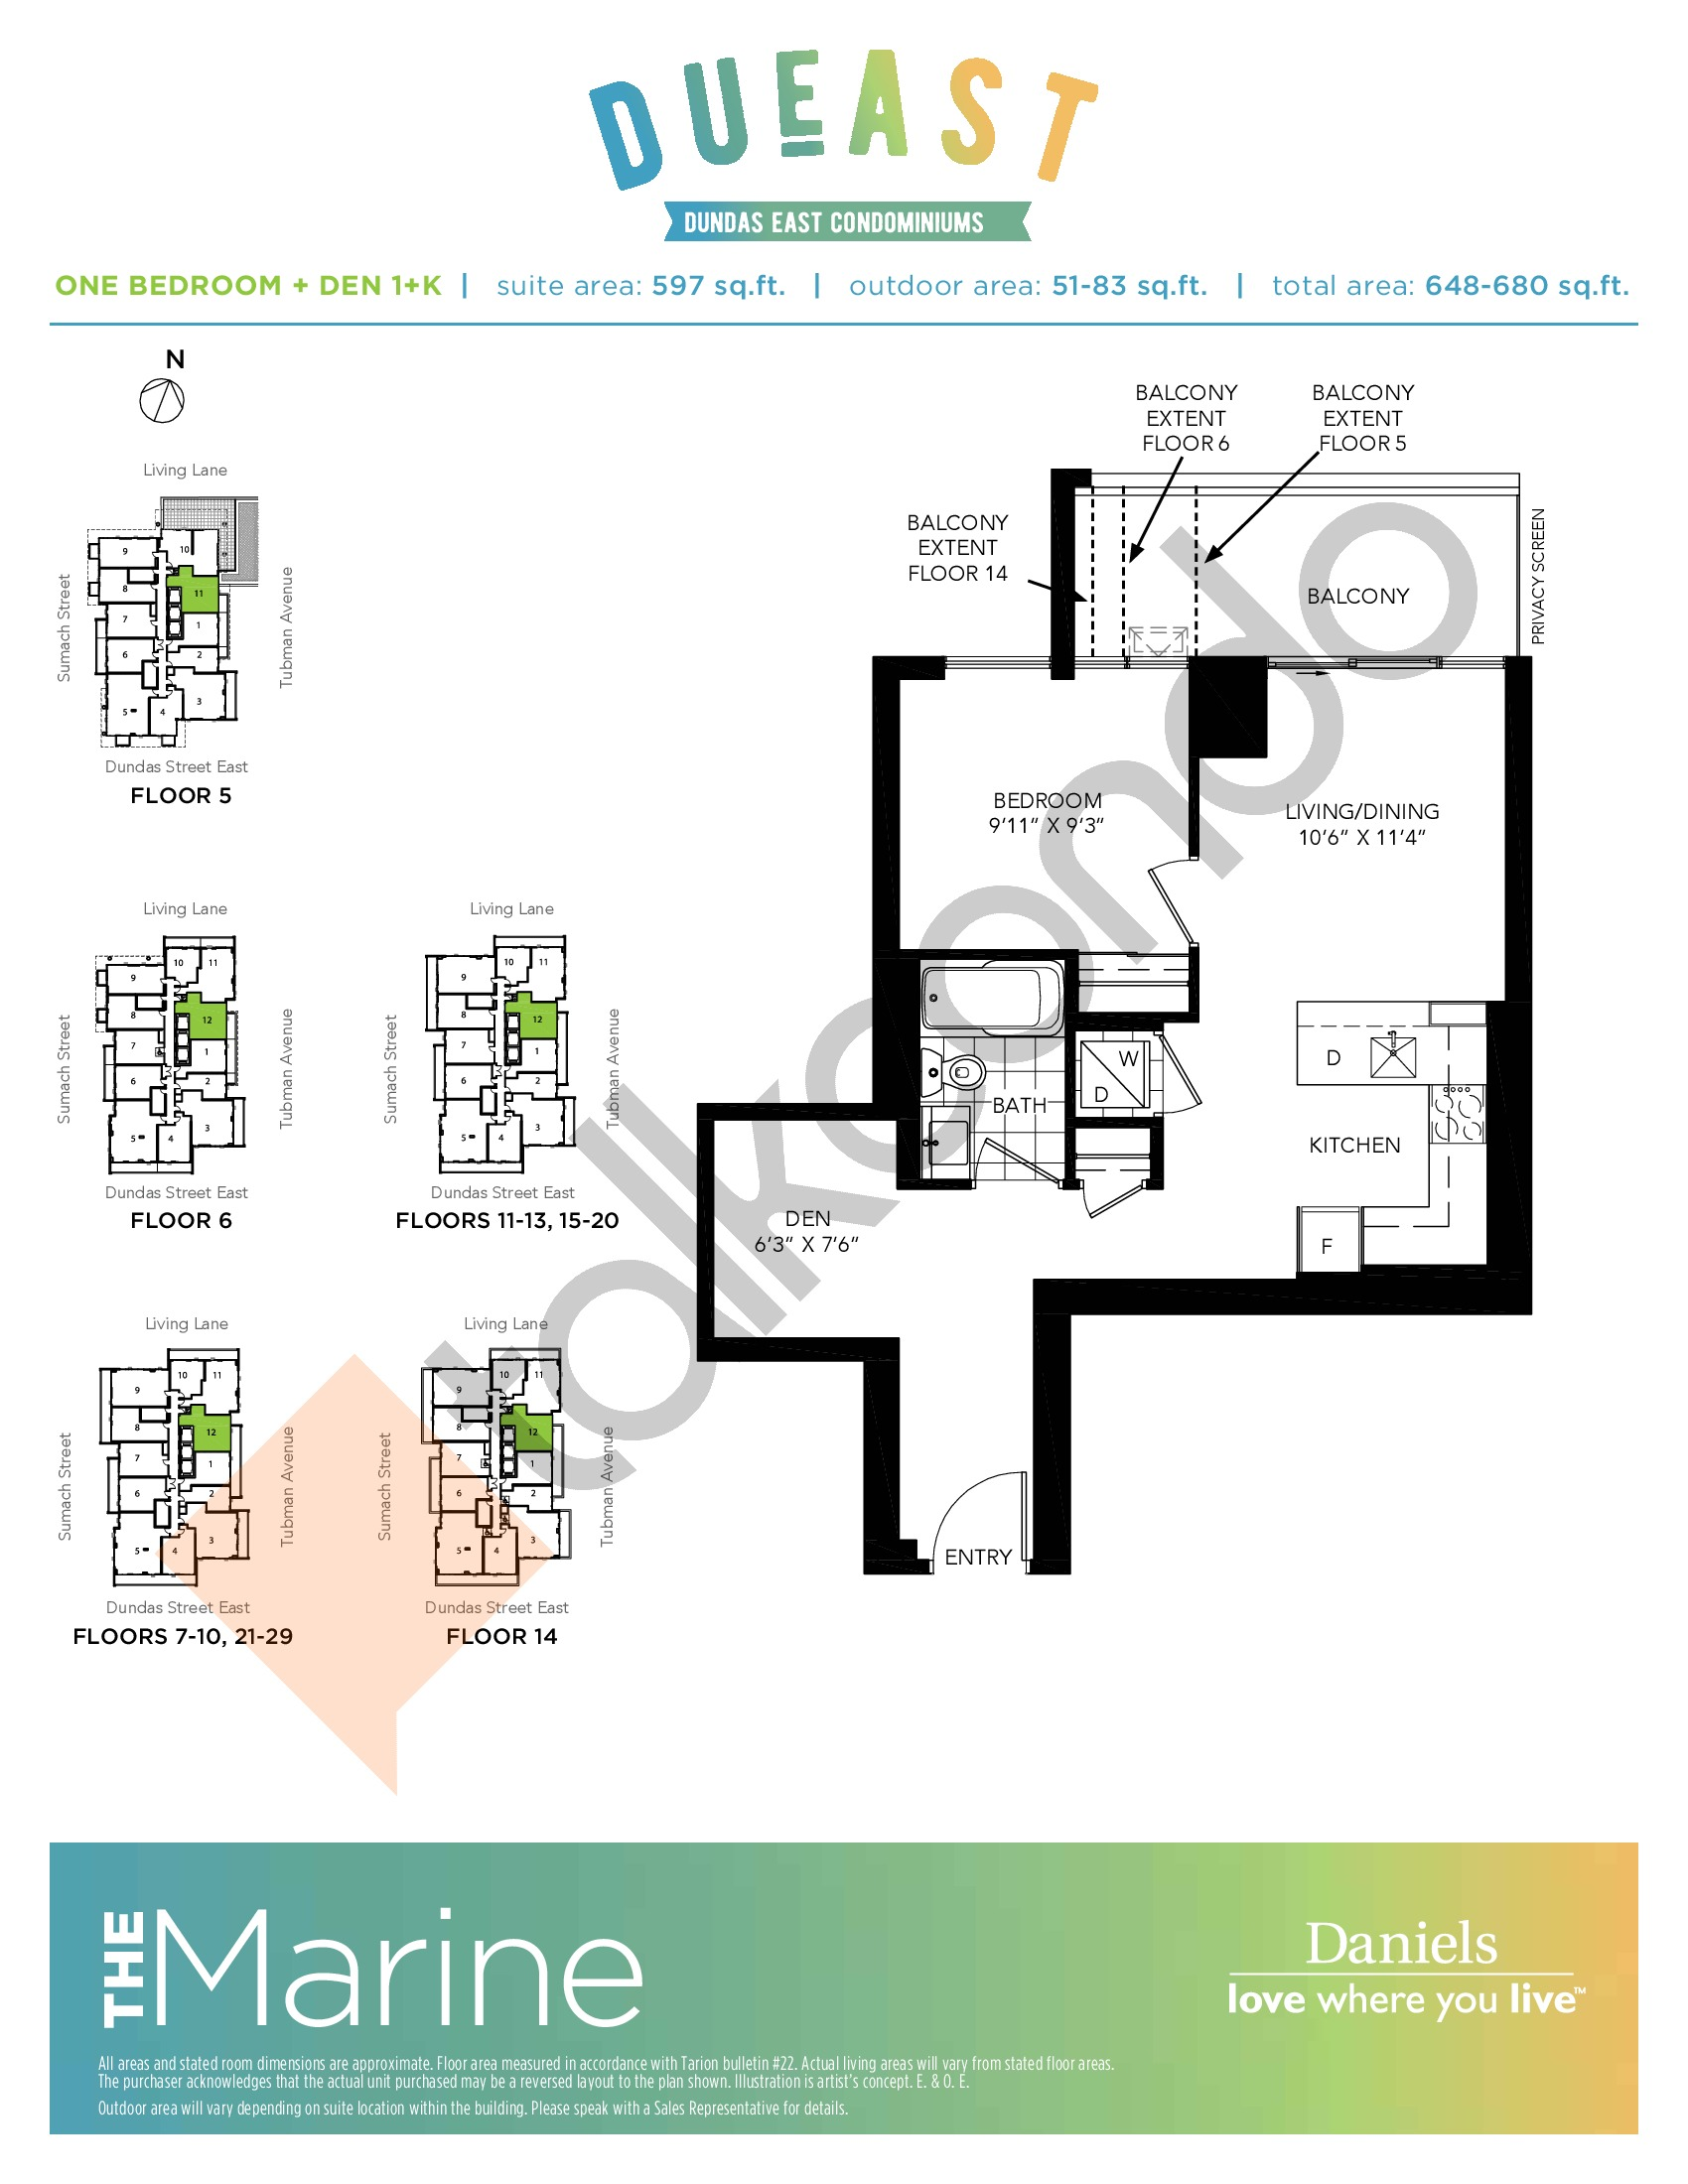 The Marine (1+K) Floor Plan at DuEast Condos - 597 sq.ft